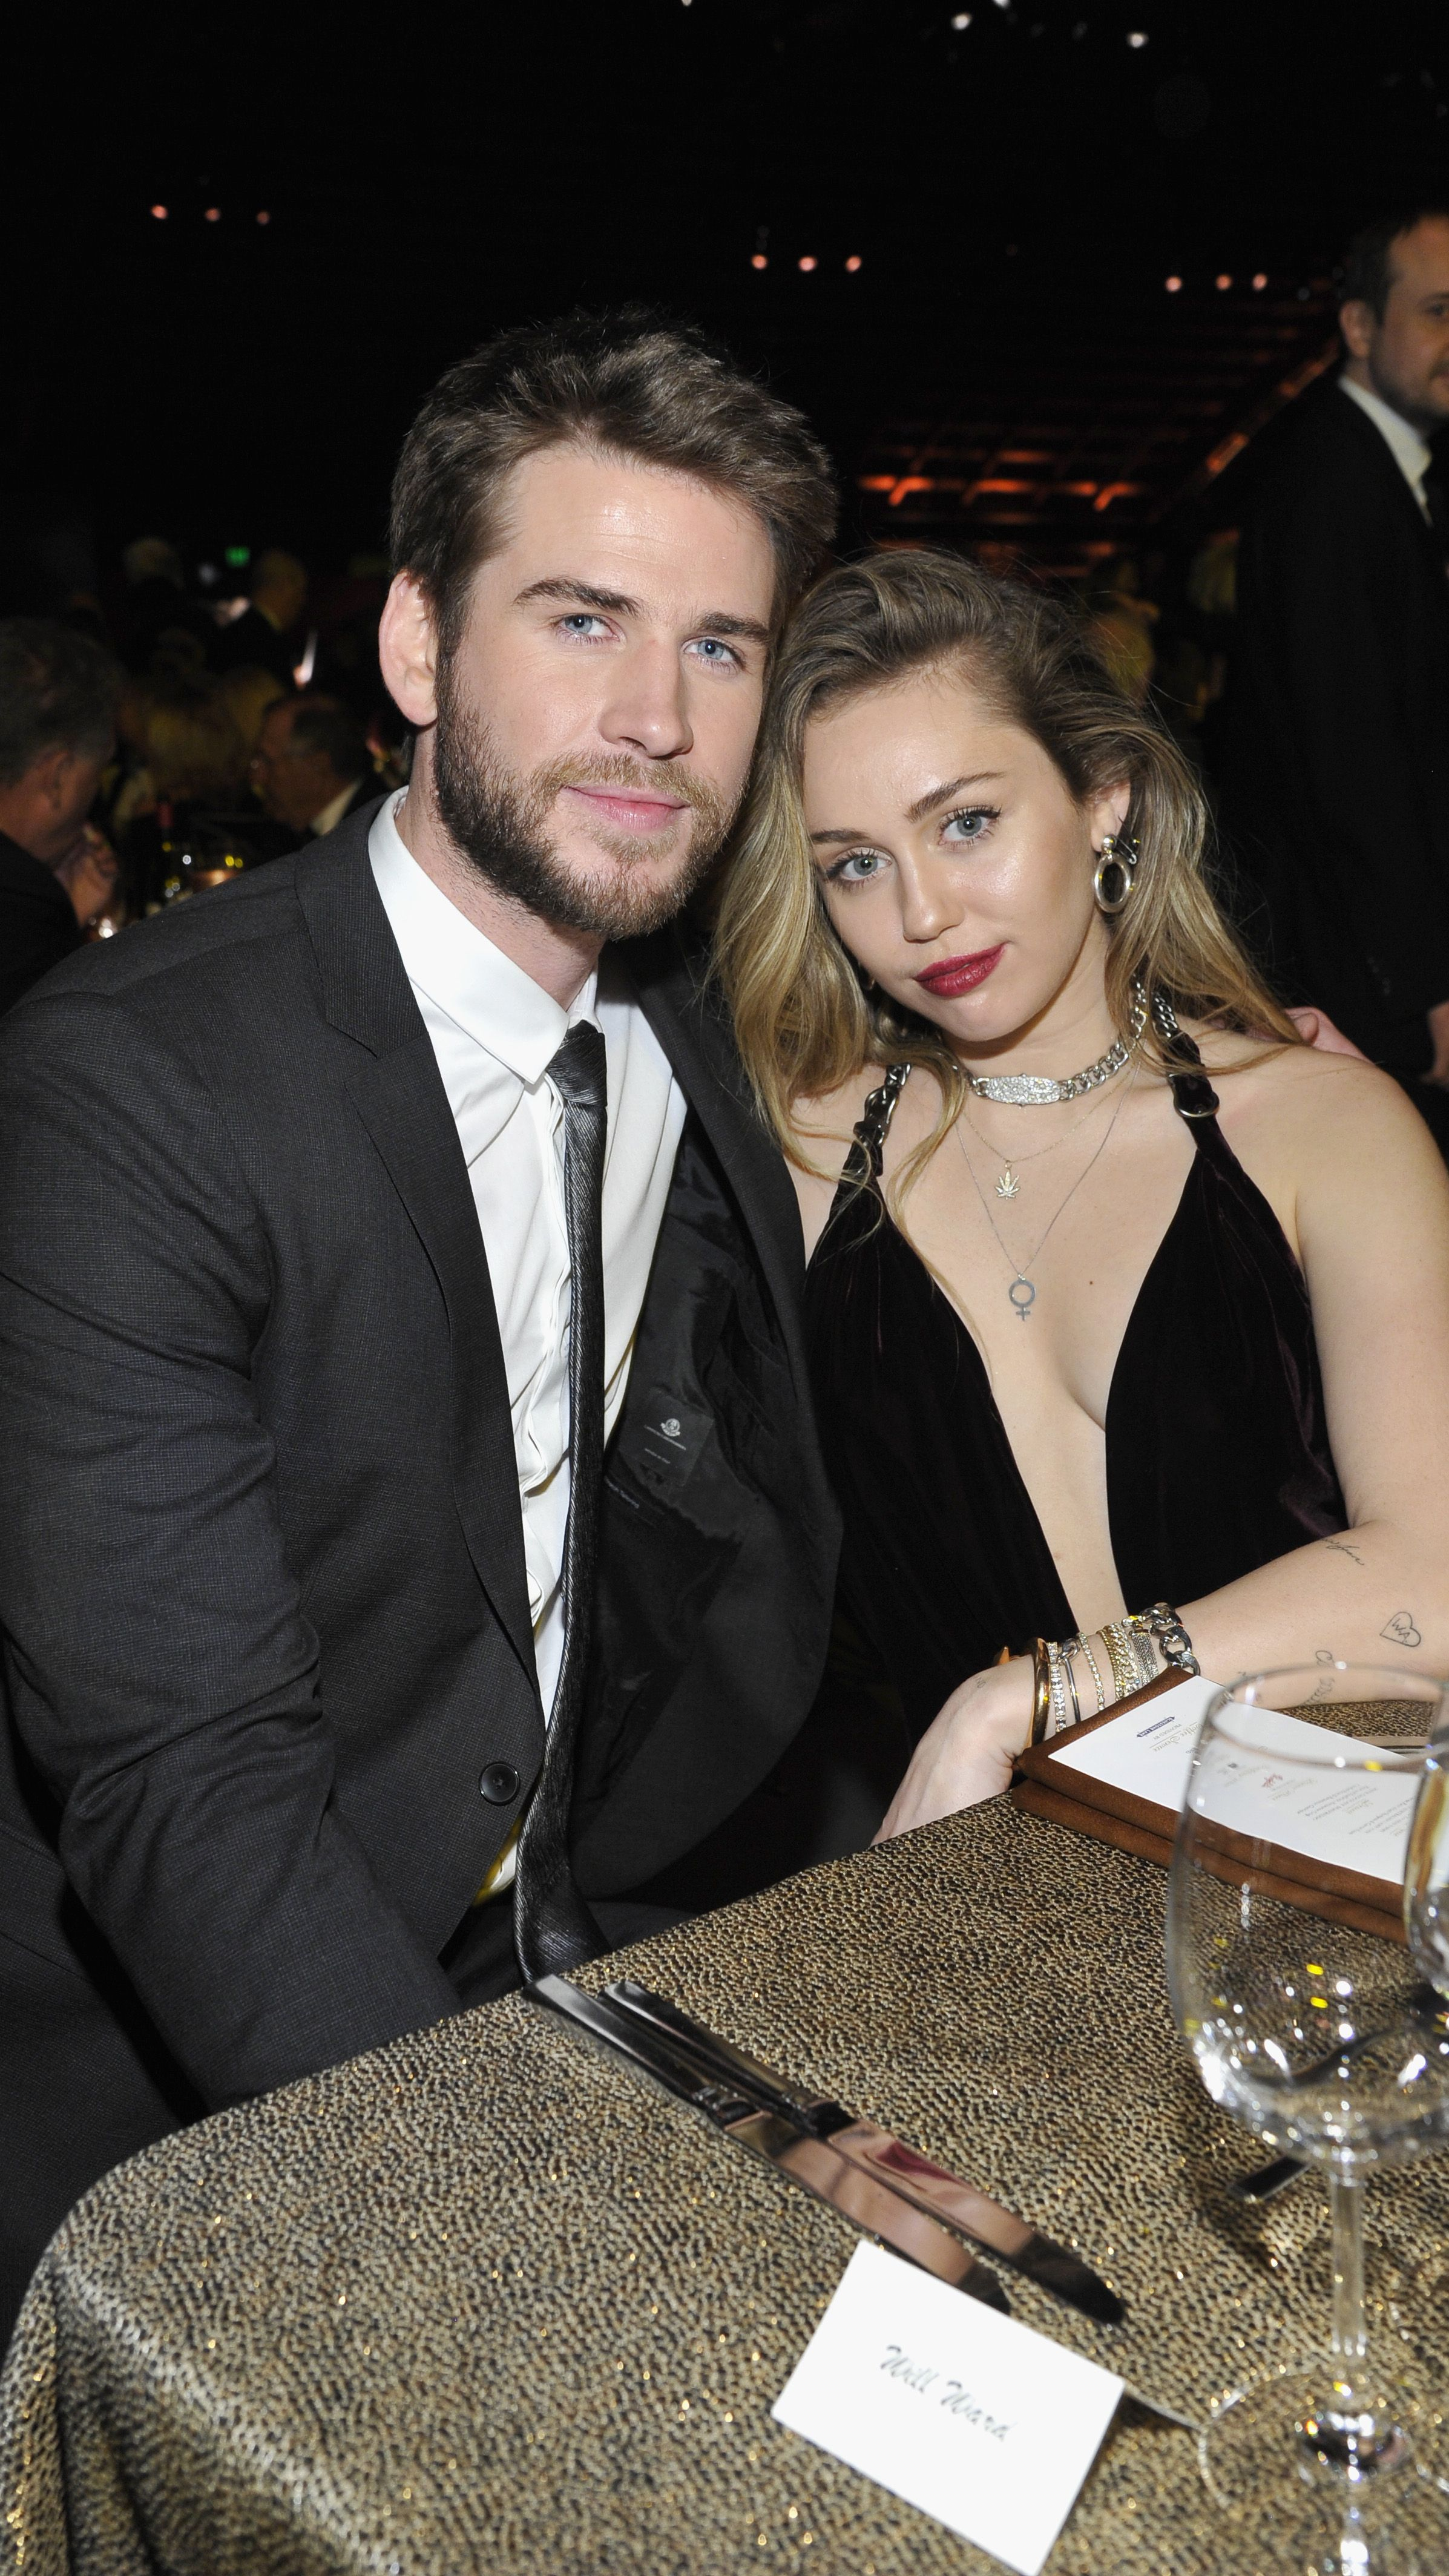 Miley Cyrus Reportedly 'Hasn't Talked' to Liam Hemsworth and Is Having a 'Hard' Time in LA Without Him